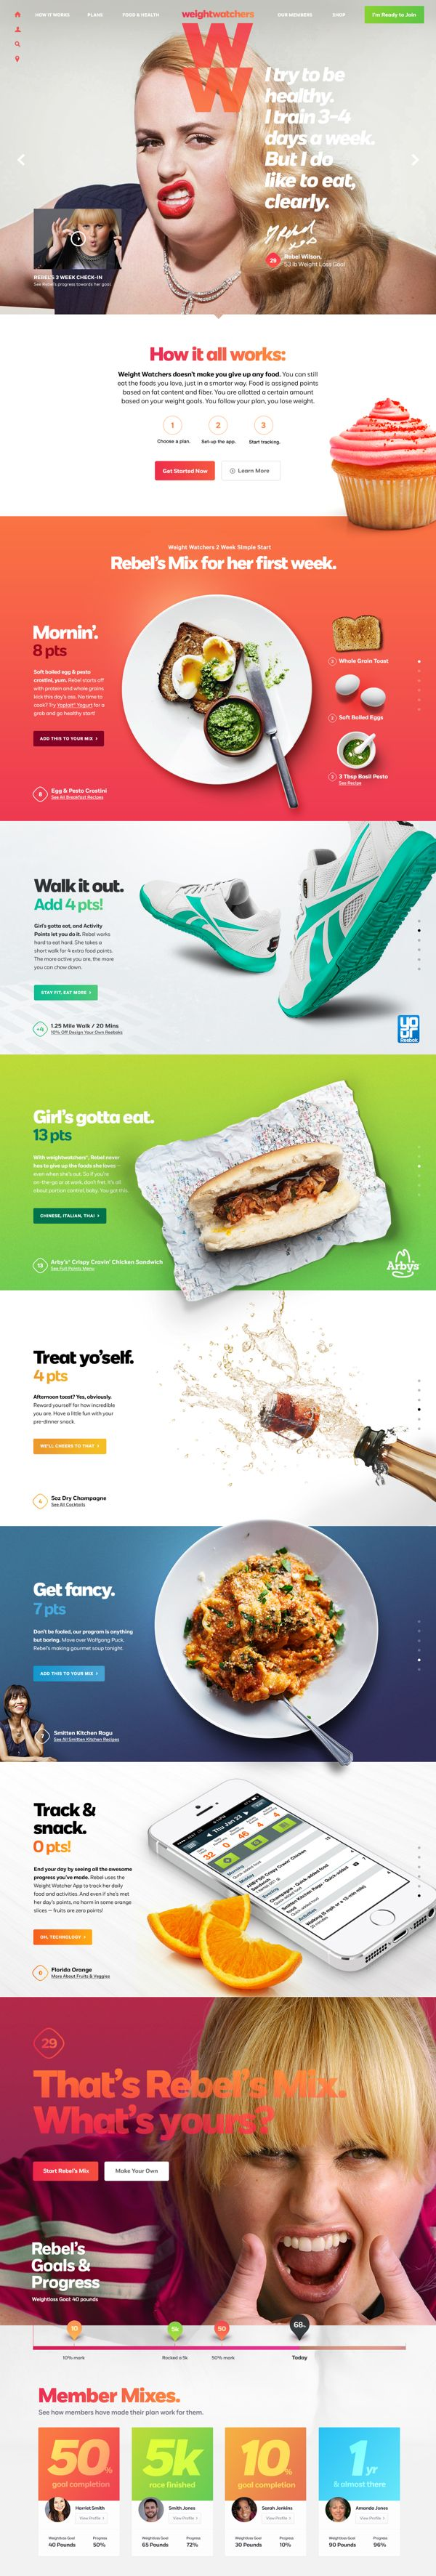 Weight Watchers on Behance